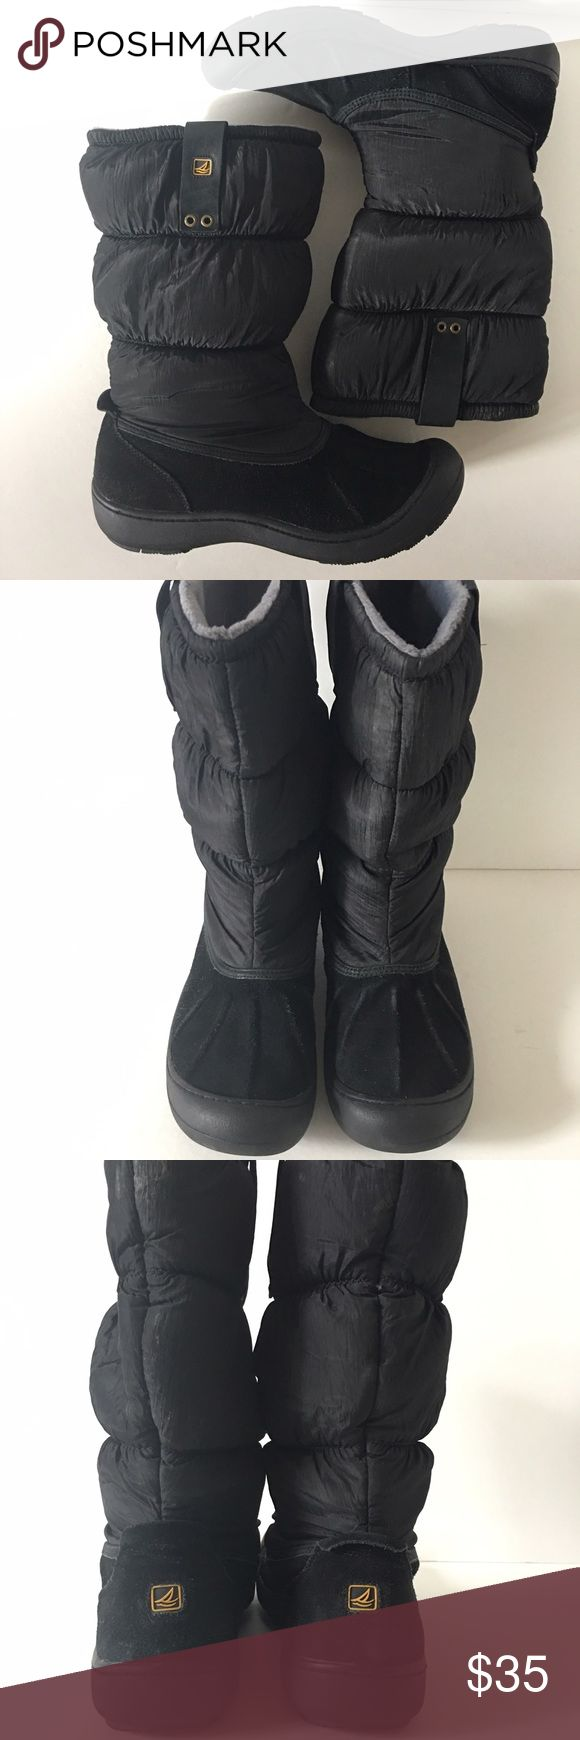 Sperry top sider snow boots In good used condition. Leather part has a little fading, see pictures. Will be cleaned before shipping. Sperry Top-Sider Shoes Winter & Rain Boots